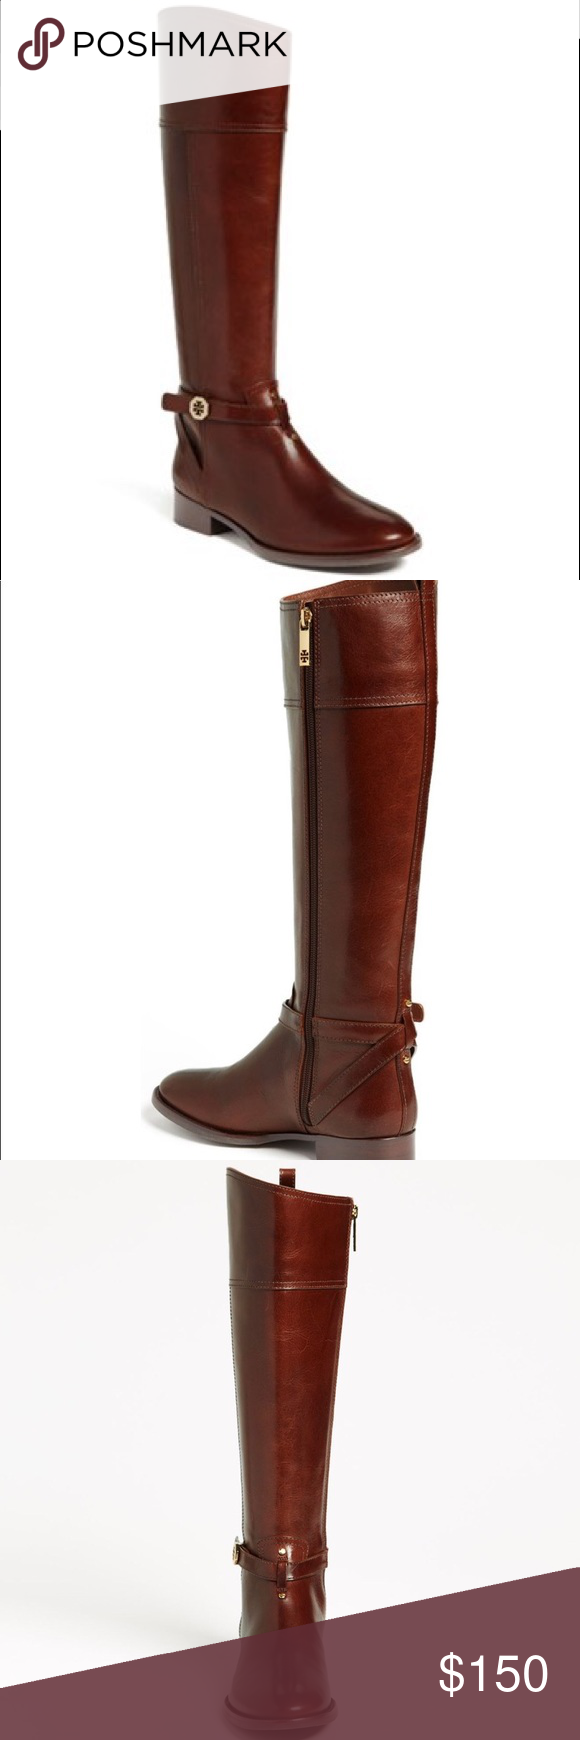 0e10cae81042 Tory Burch Brita Riding Boot Brown Email with questions! Tory Burch Shoes  Winter   Rain